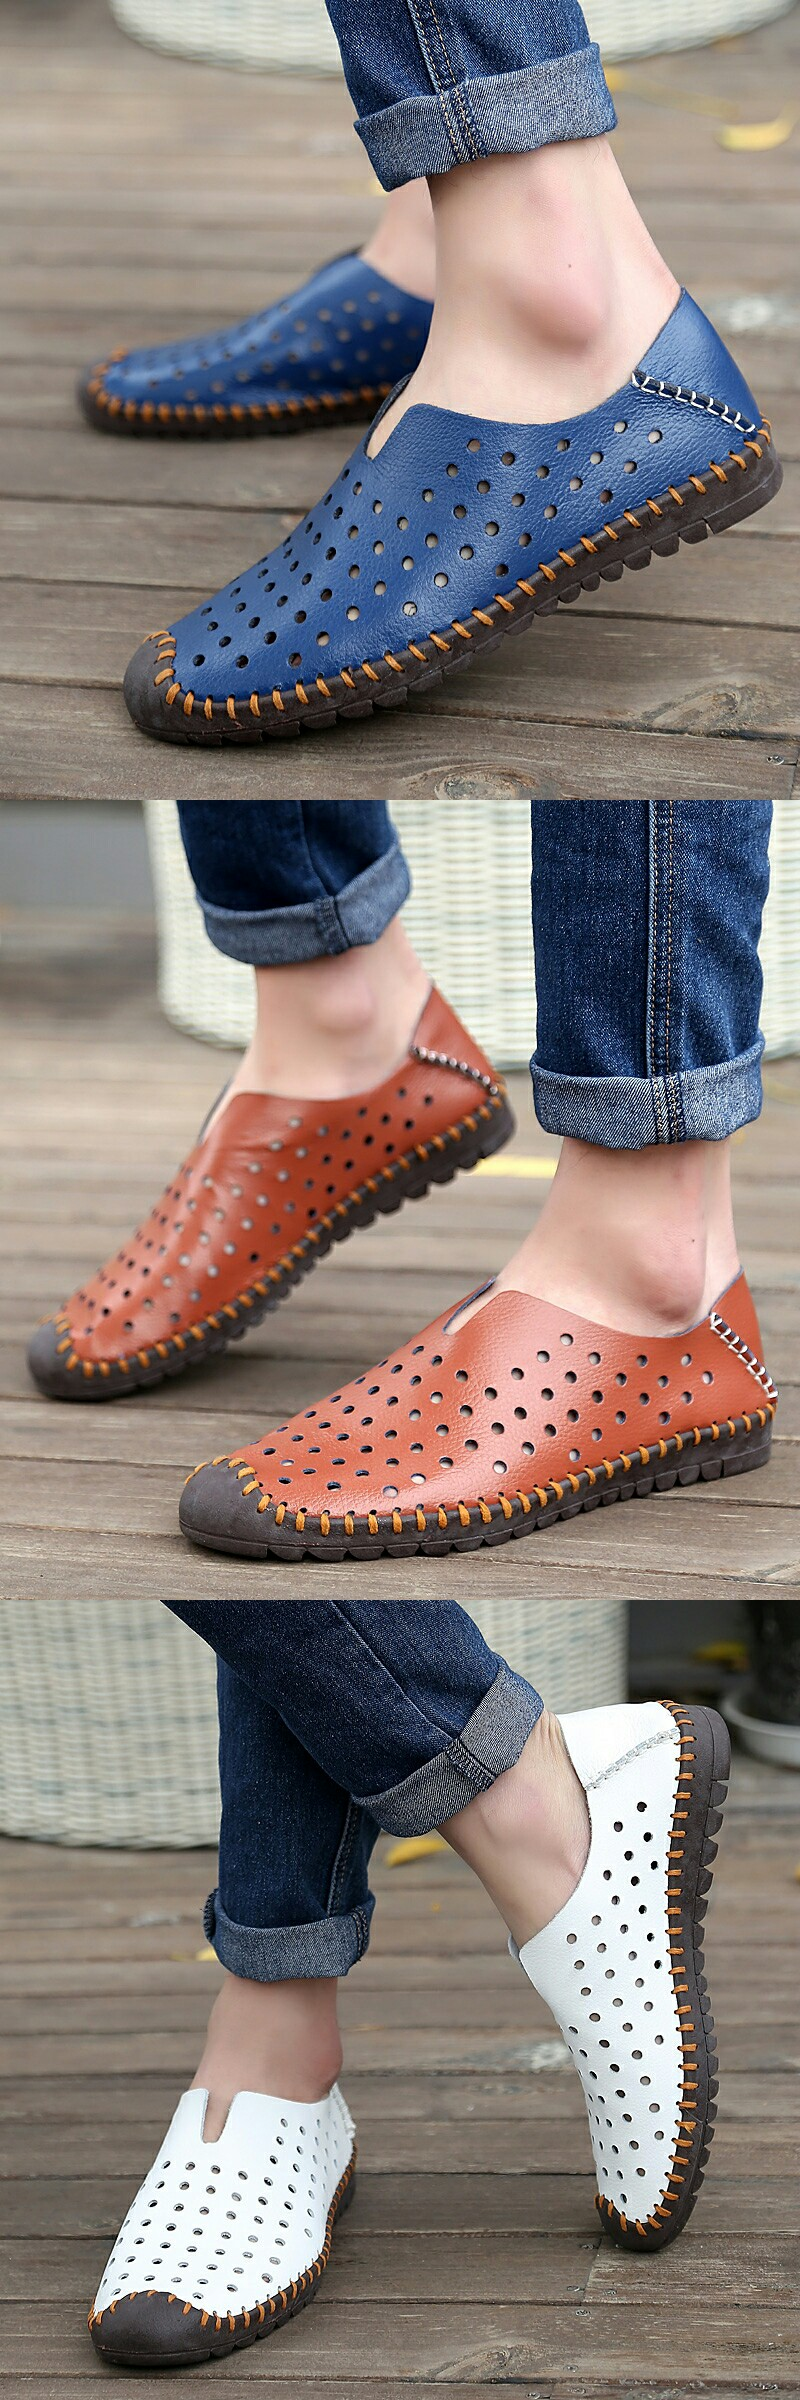 Amazon Men S Leather Summer Breathable Shoes Slip On Loafers Casual Shoes Hollow Out Dress Shoes Men Mens Boots Fashion Breathable Shoes [ 2400 x 800 Pixel ]